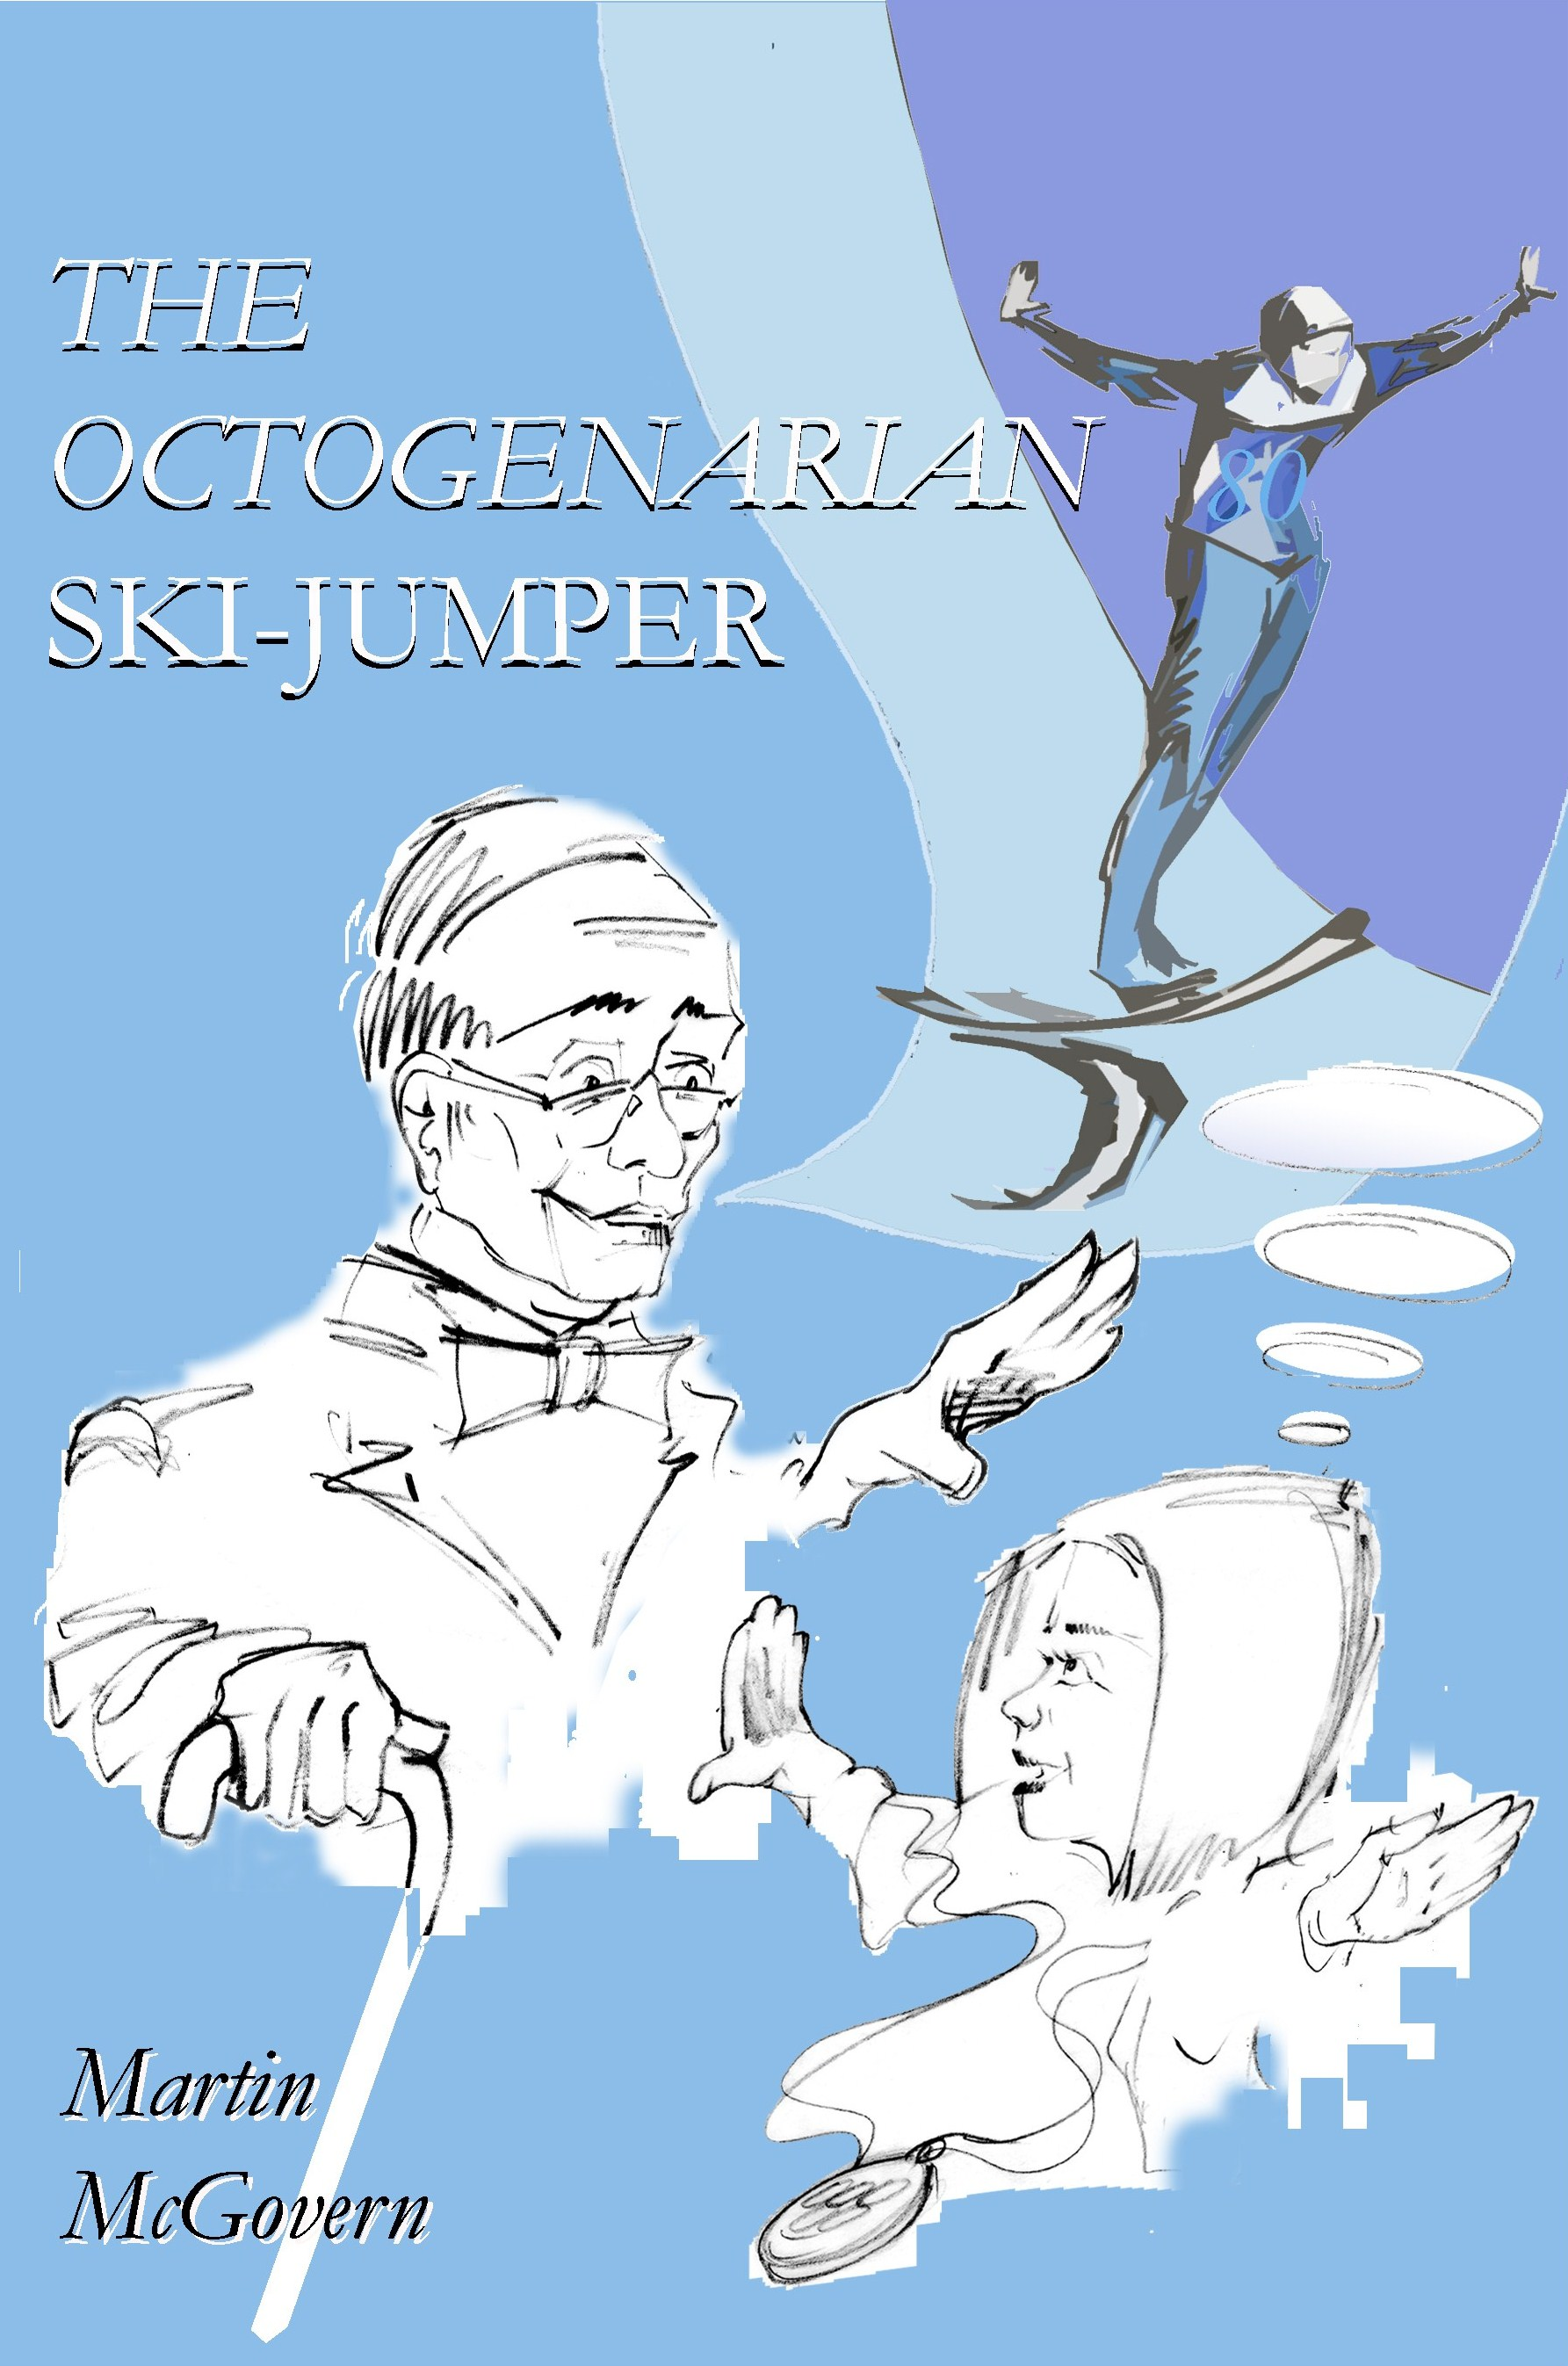 Age 22 - The Octogenarian Ski-jumper